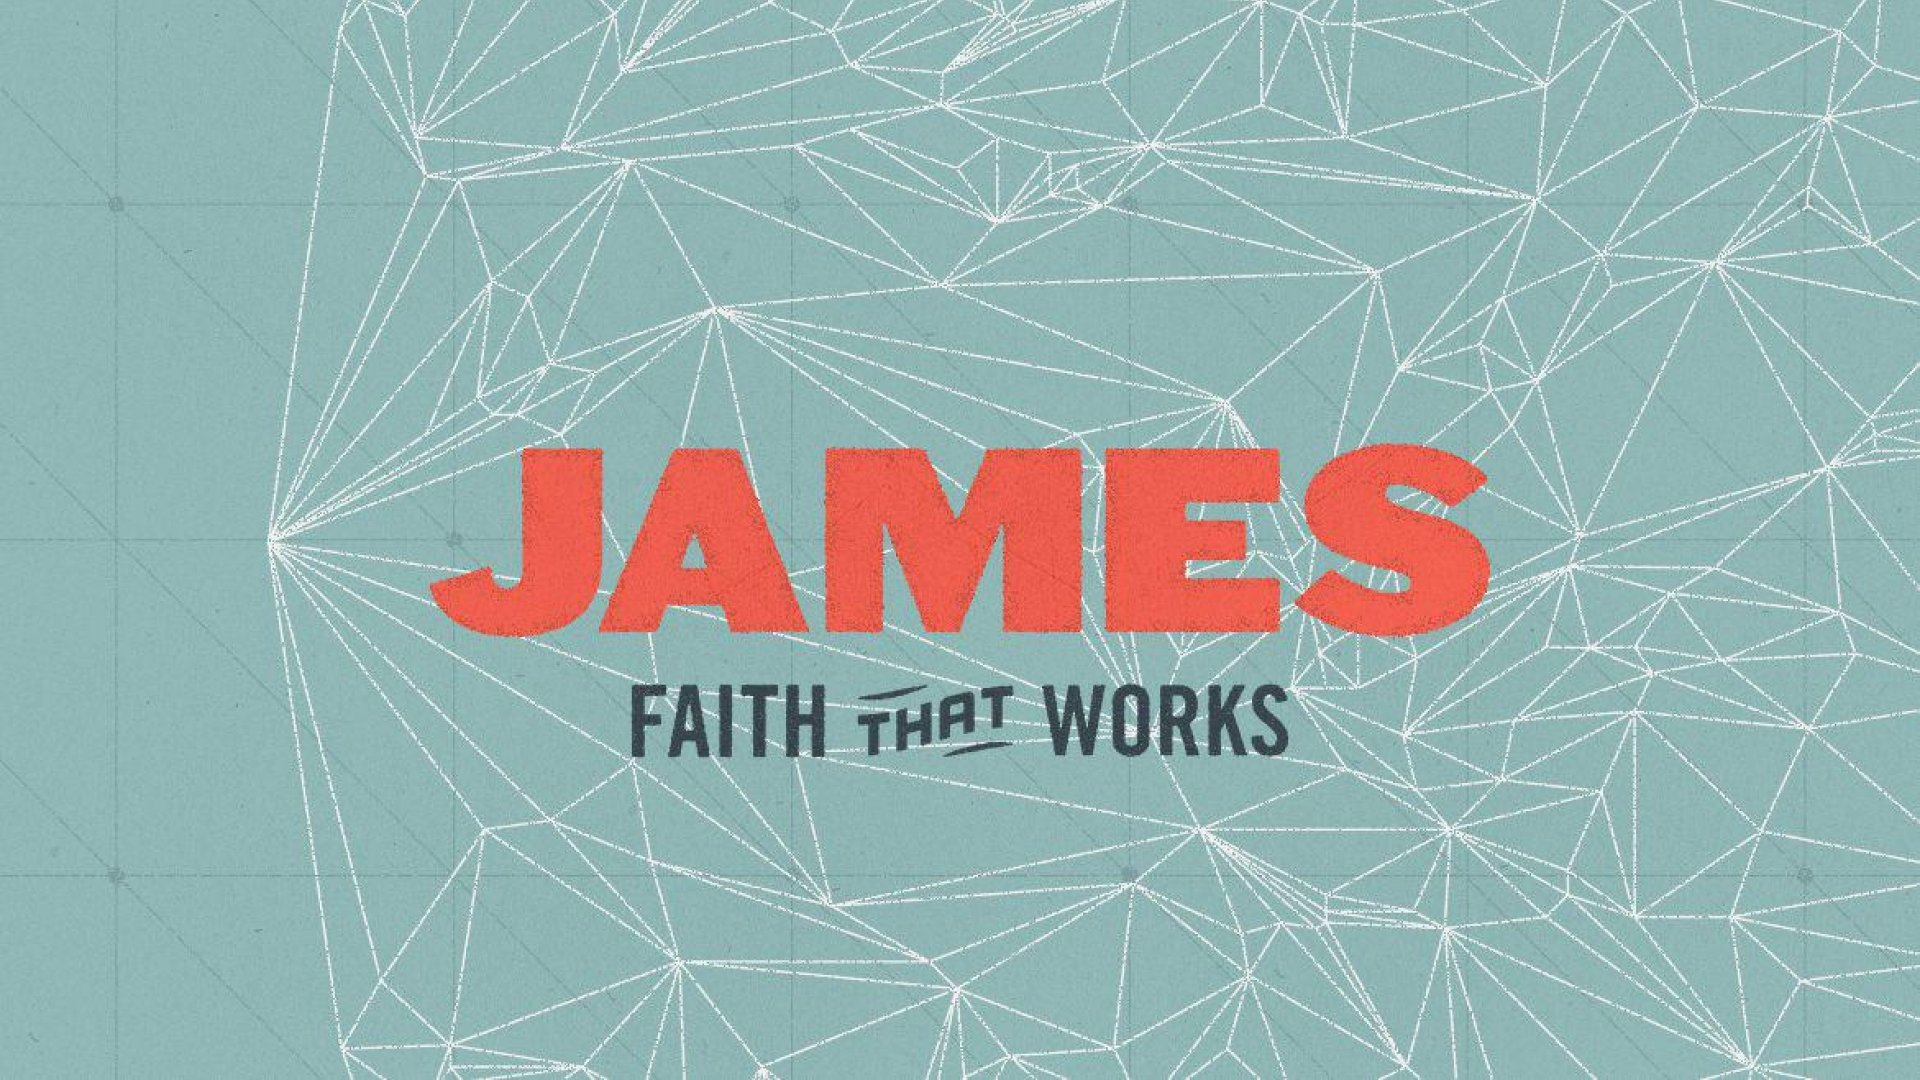 Teaching artwork for James